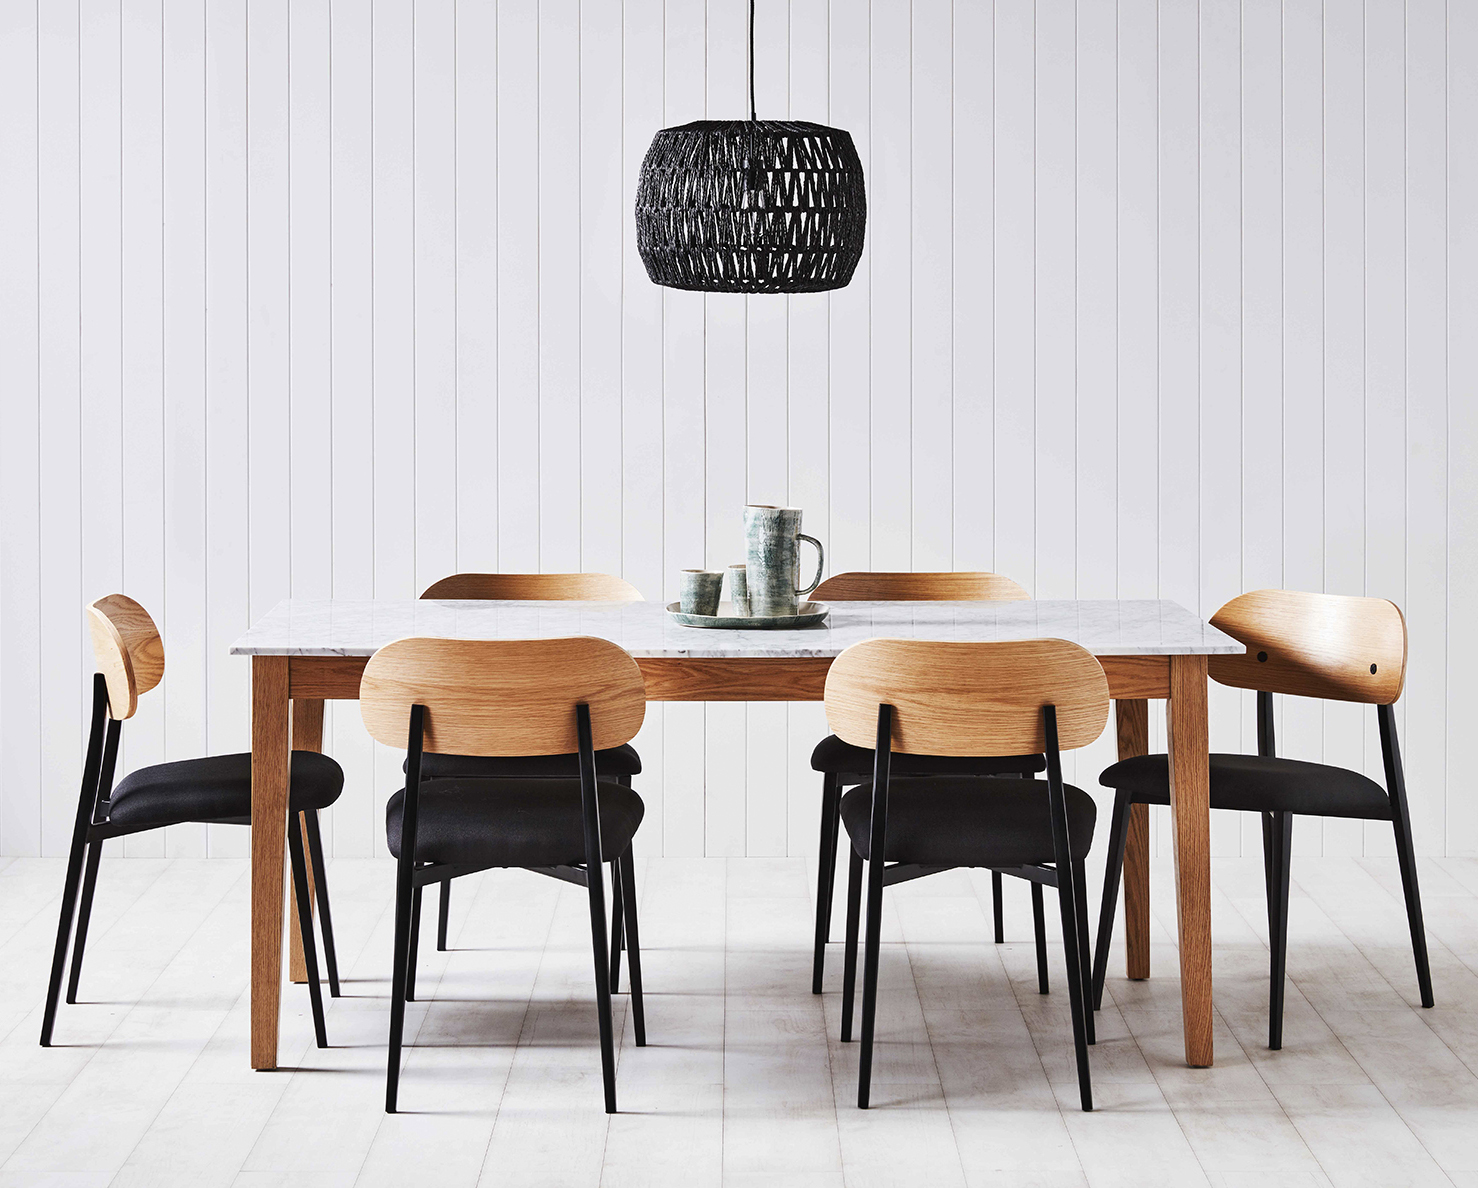 Pavia dining table from Early Settler